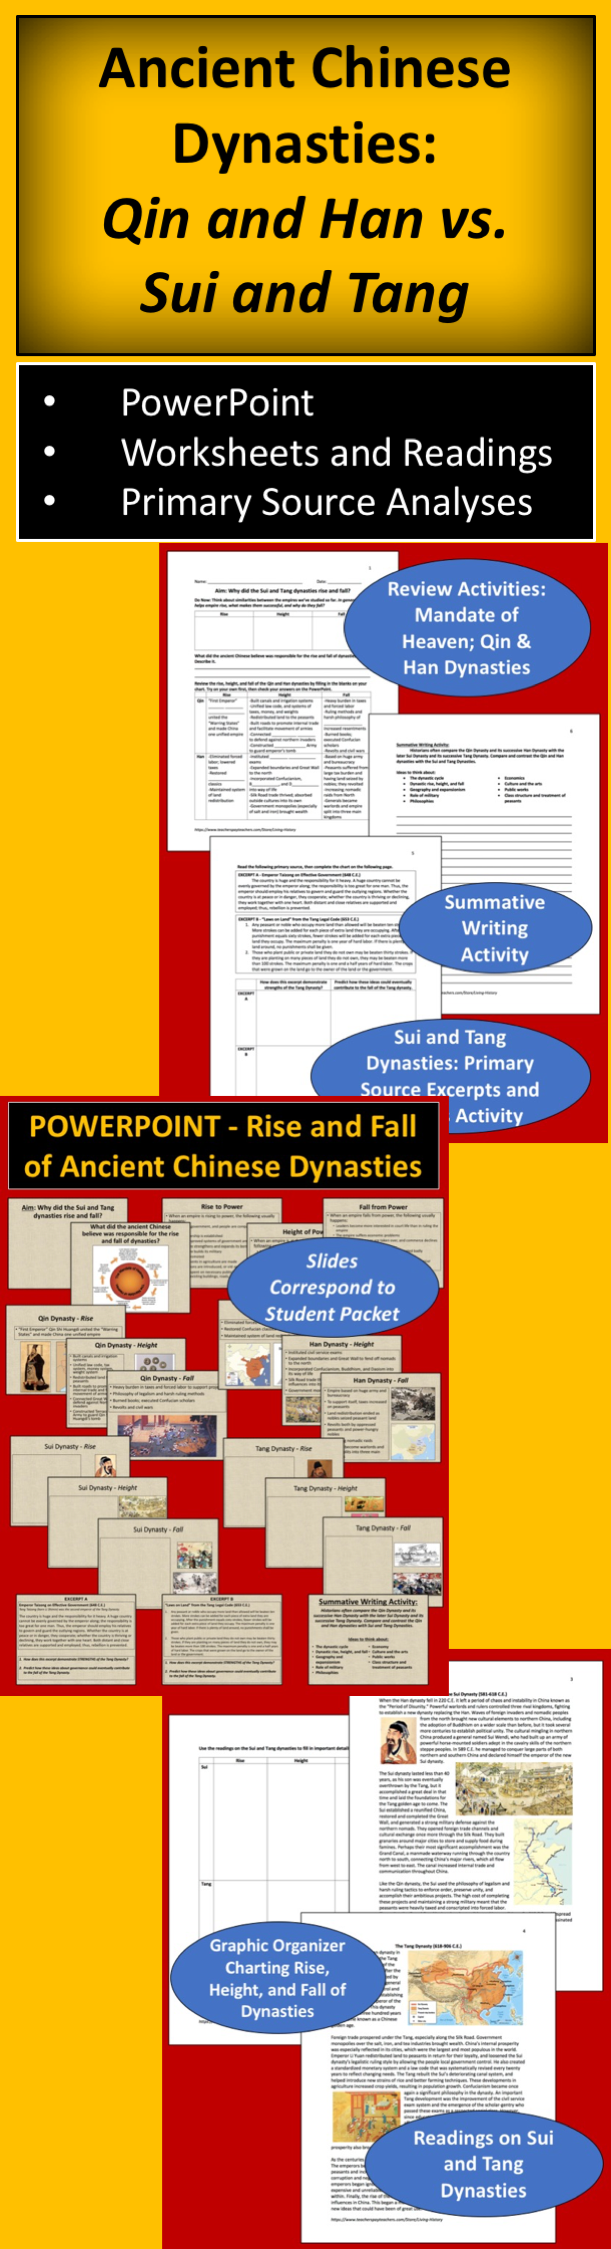 fall of han dynasty